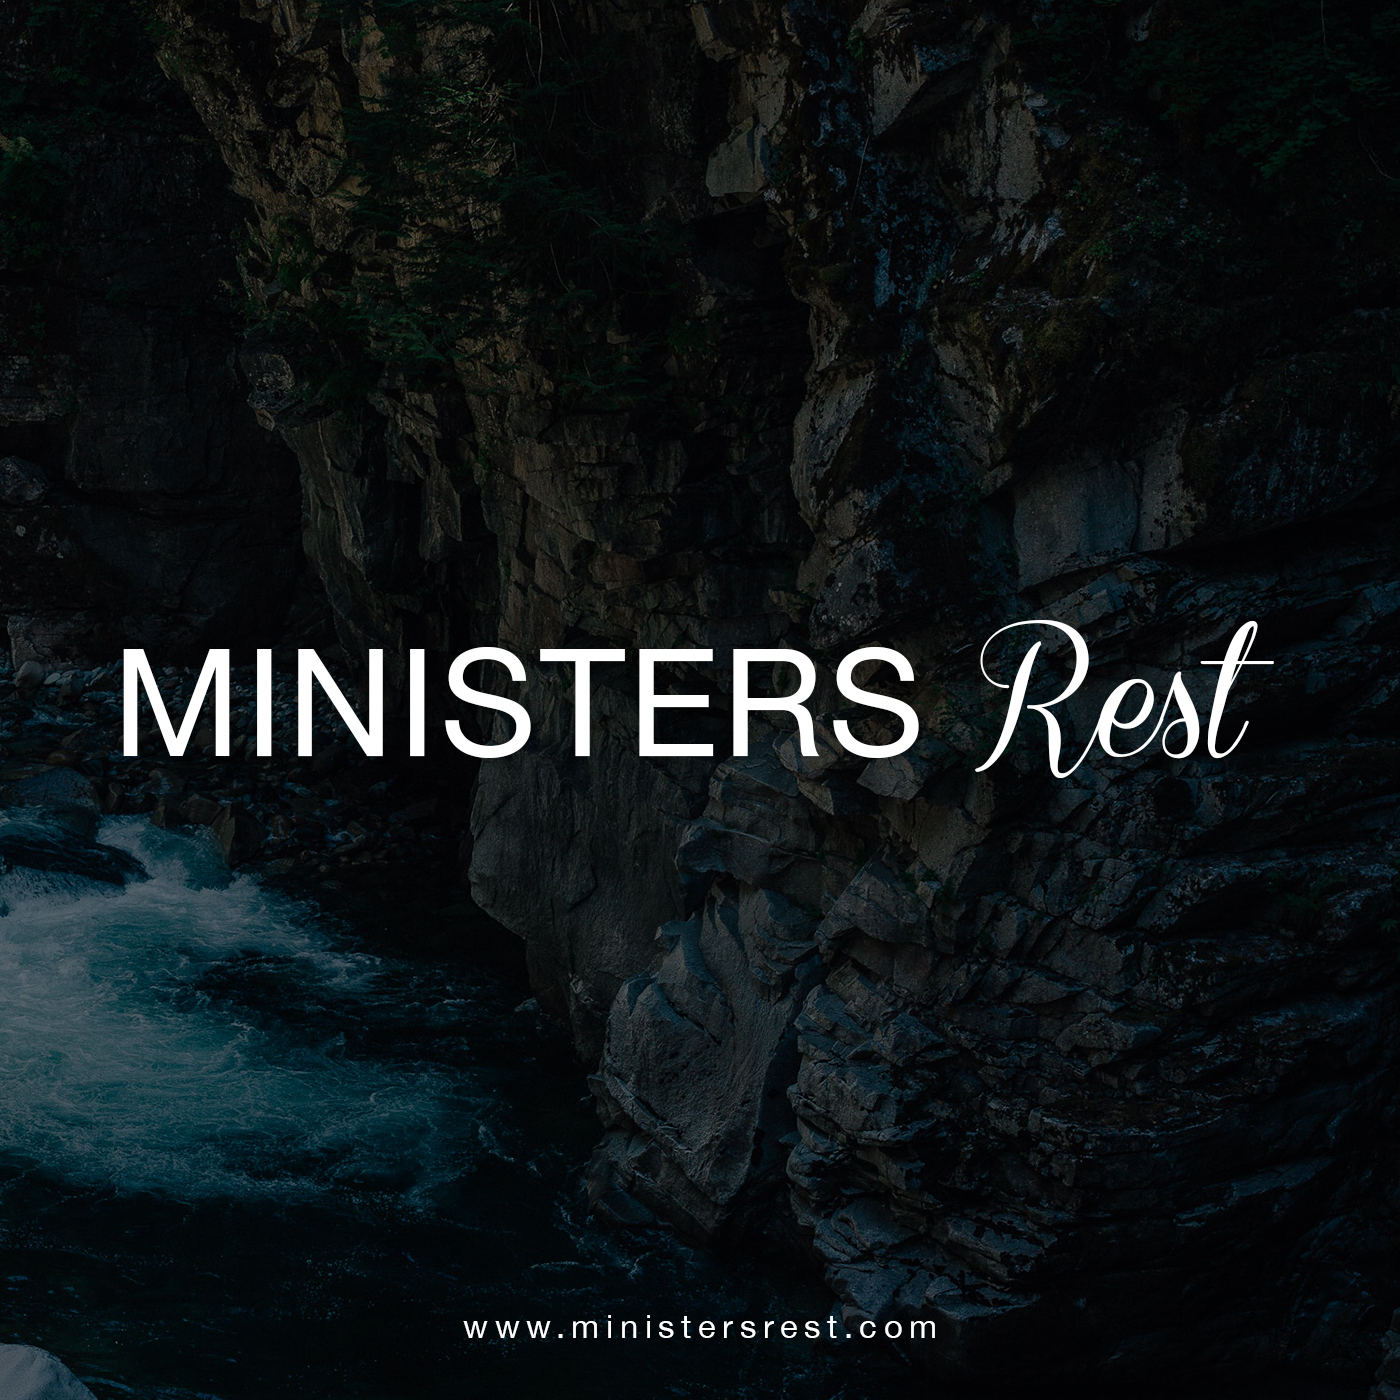 Ministers Rest